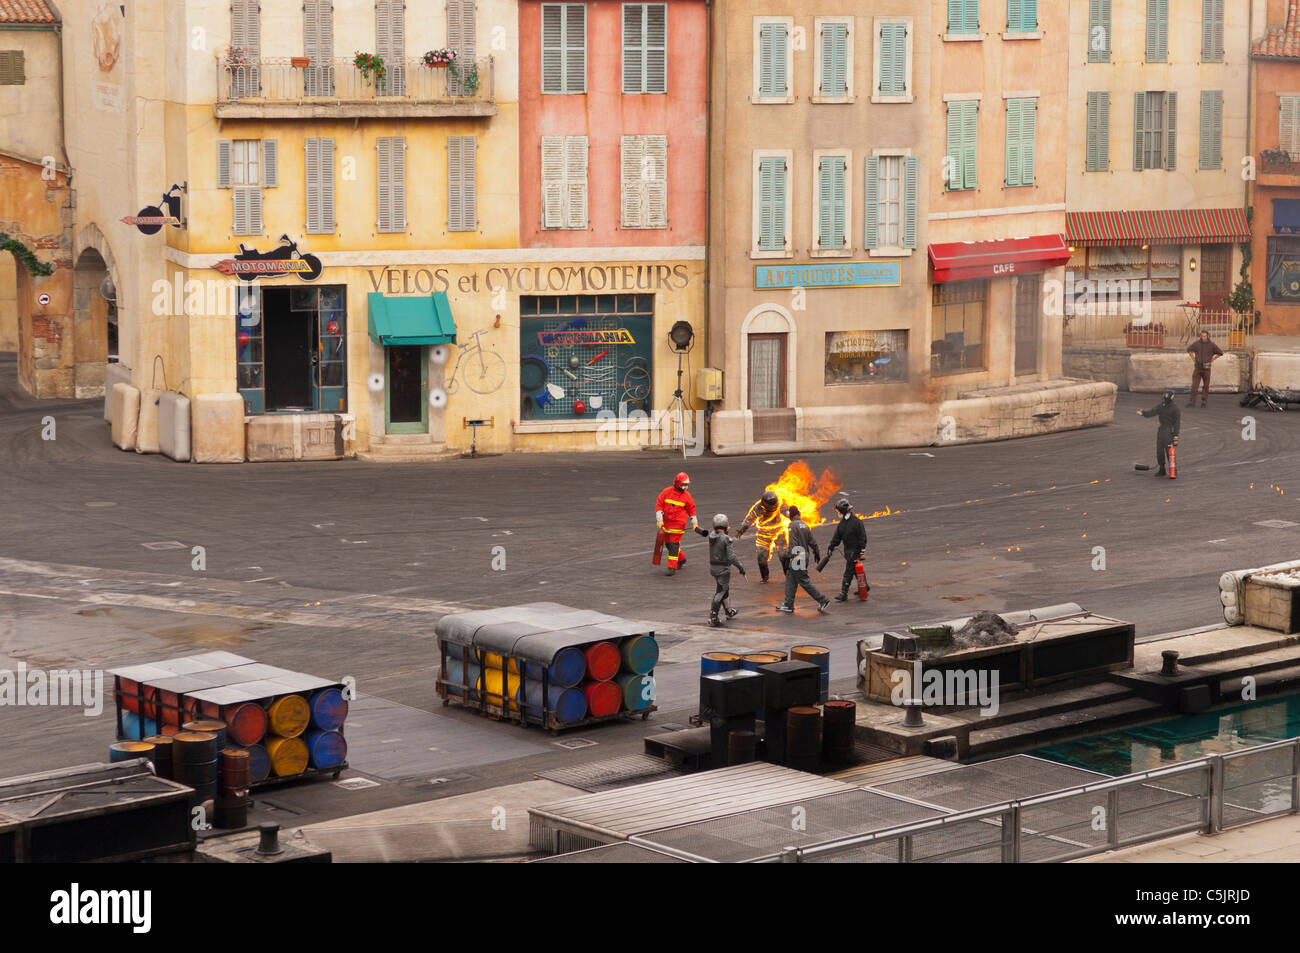 A stuntman on fire showing movement at the Moteurs...Action stunt show spectacular at Disneyland Paris in France Stock Photo